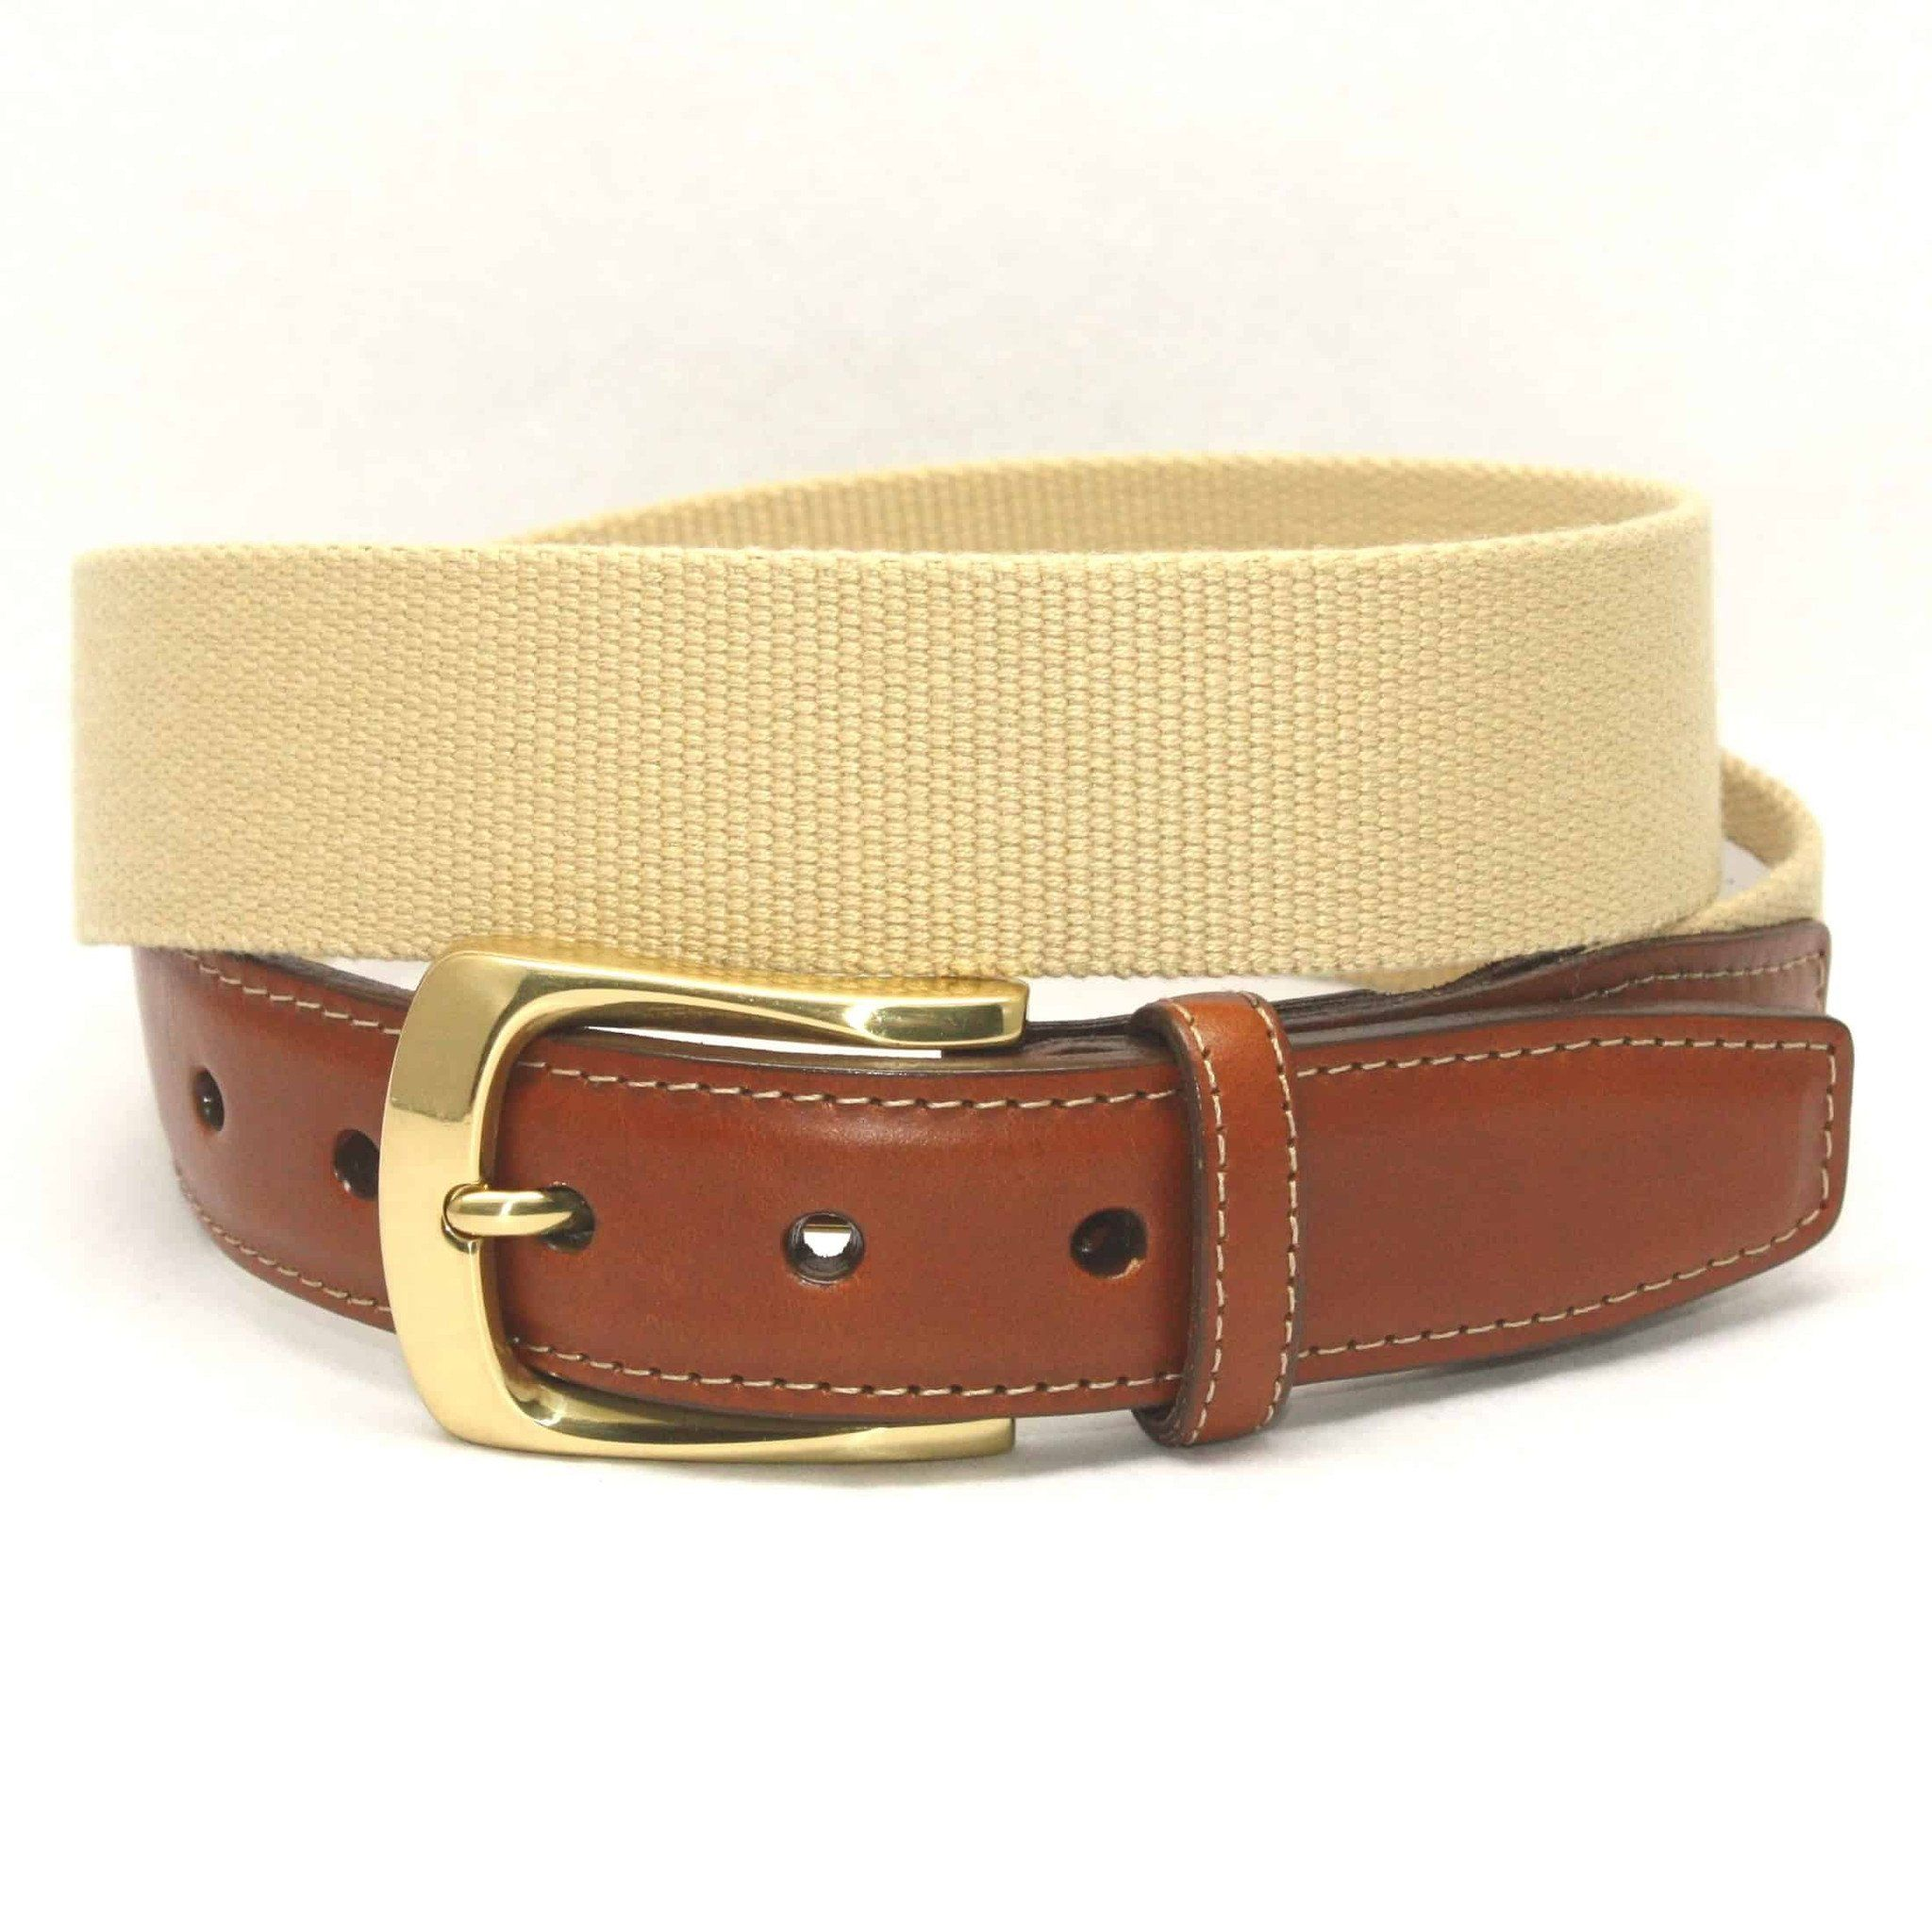 European Ribbed Surcingle Belt - Camel,BELT,GentRow.com, | GentRow.com